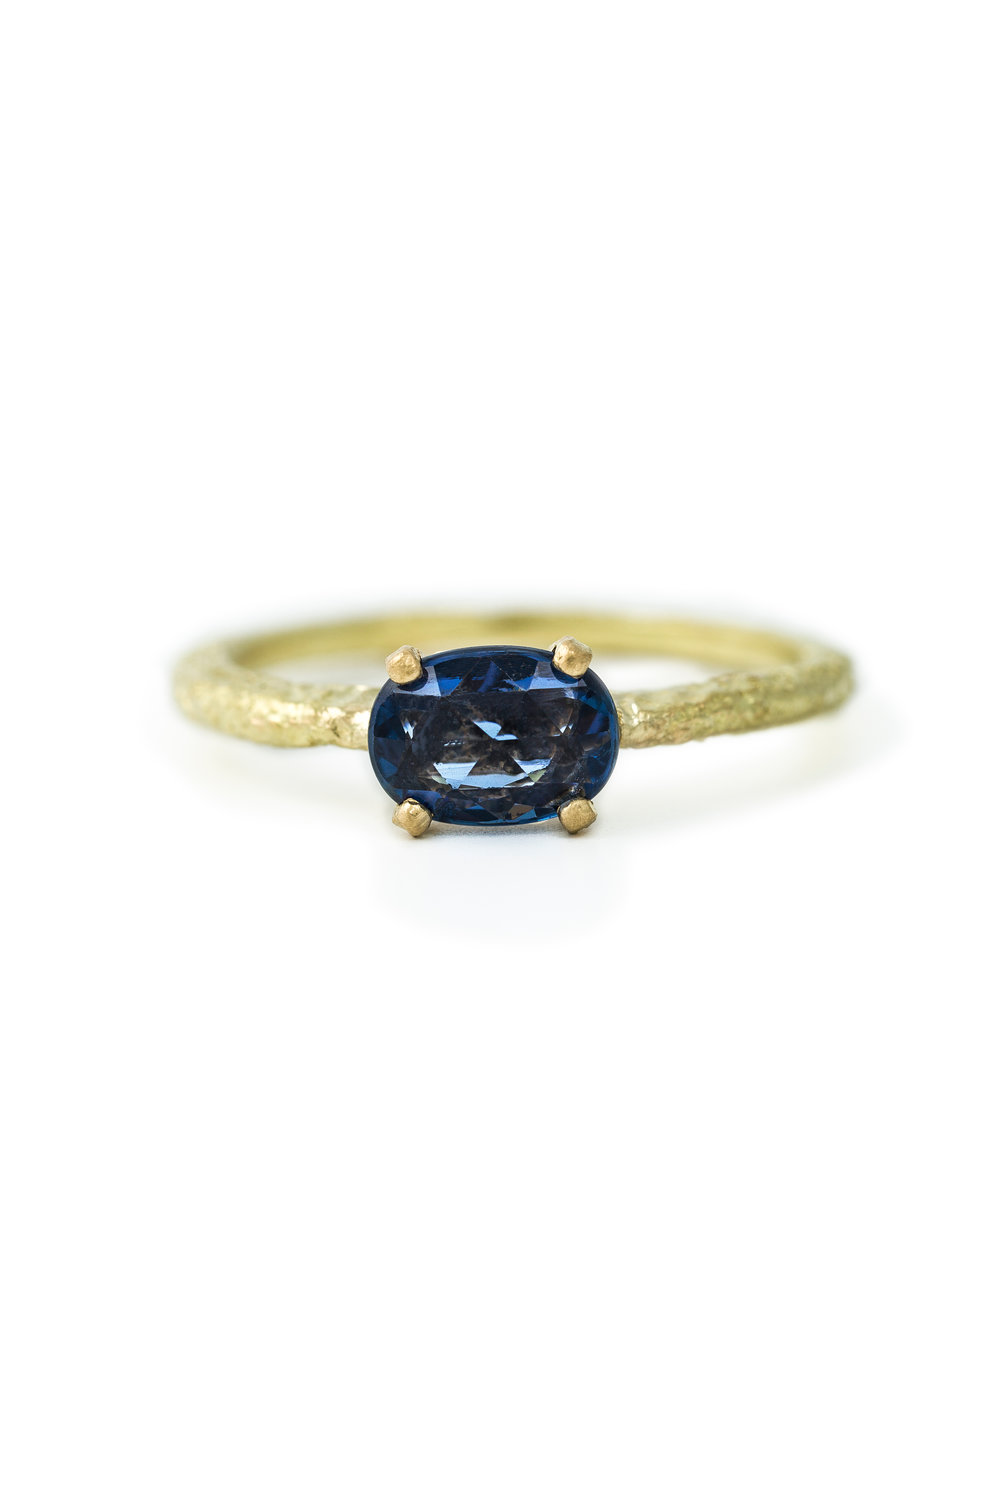 Oval rose cut sapphire ring in yellow gold